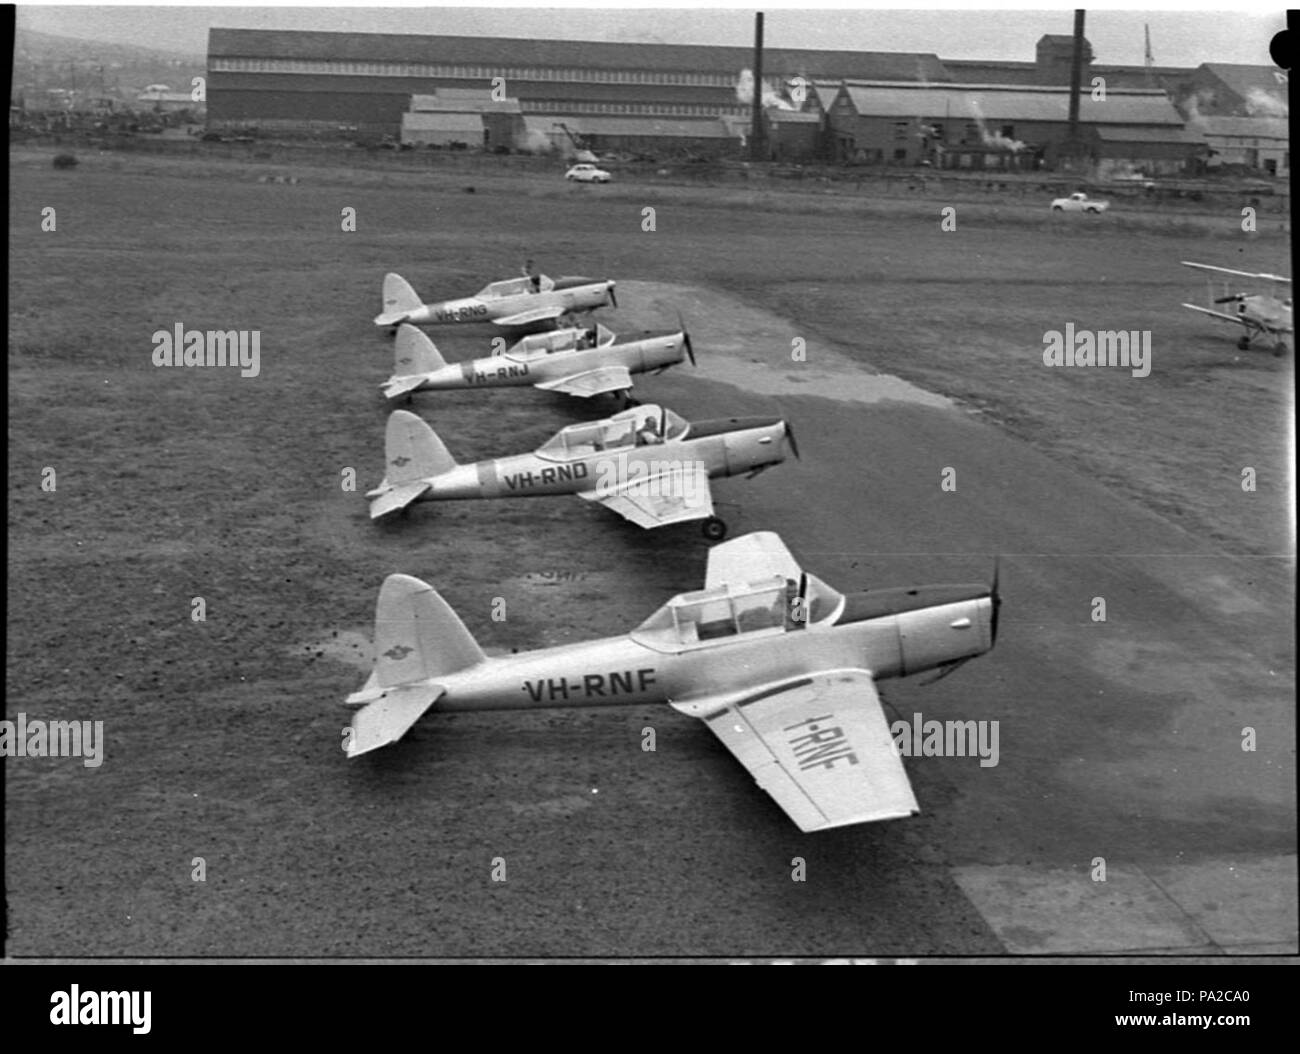 263 SLNSW 37847 Royal Newcastle Aero Club planes leaving for Hobart for regatta - Stock Image